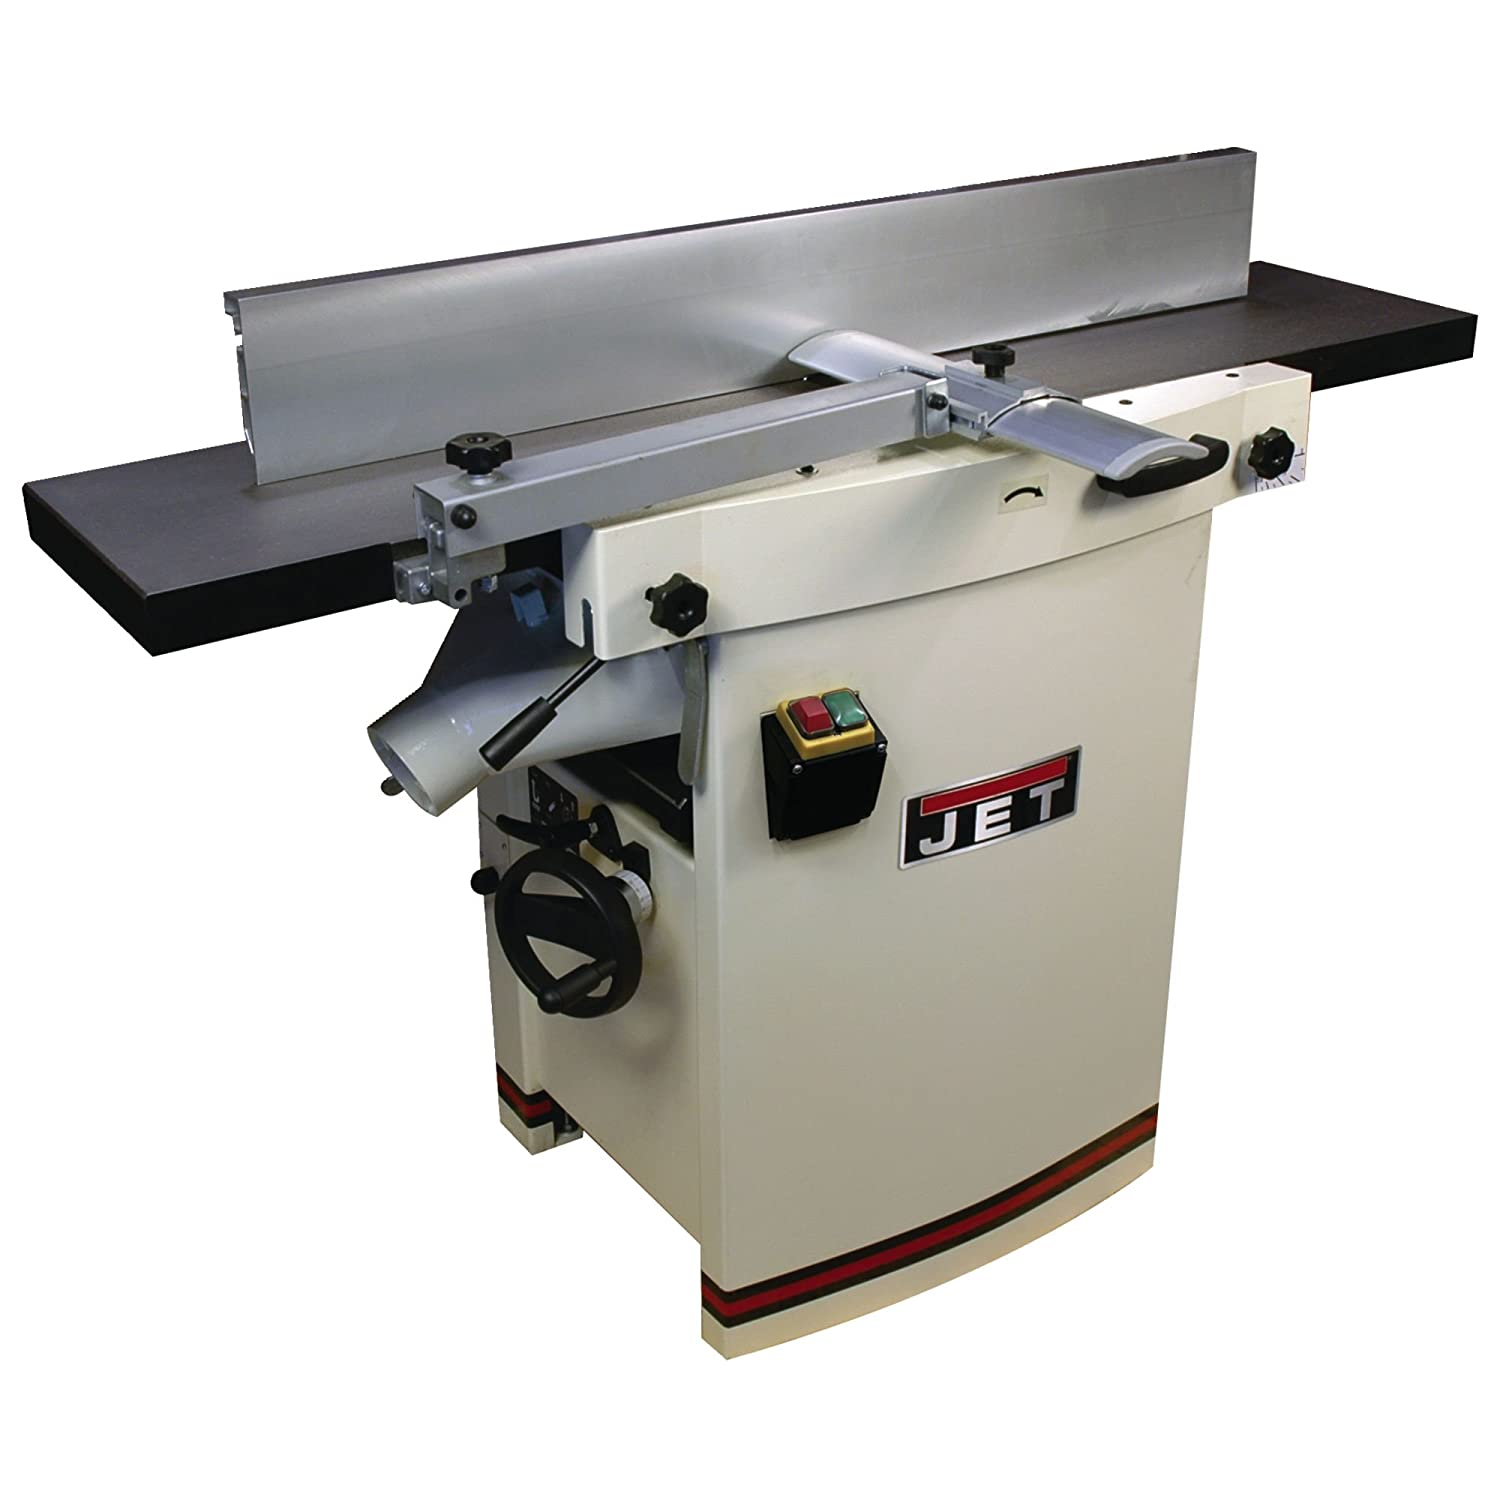 Jet 708476 Model Jjp 12hh 12 Inch Planer Jointer With Helical Cutterhead Power Planers Amazon Com